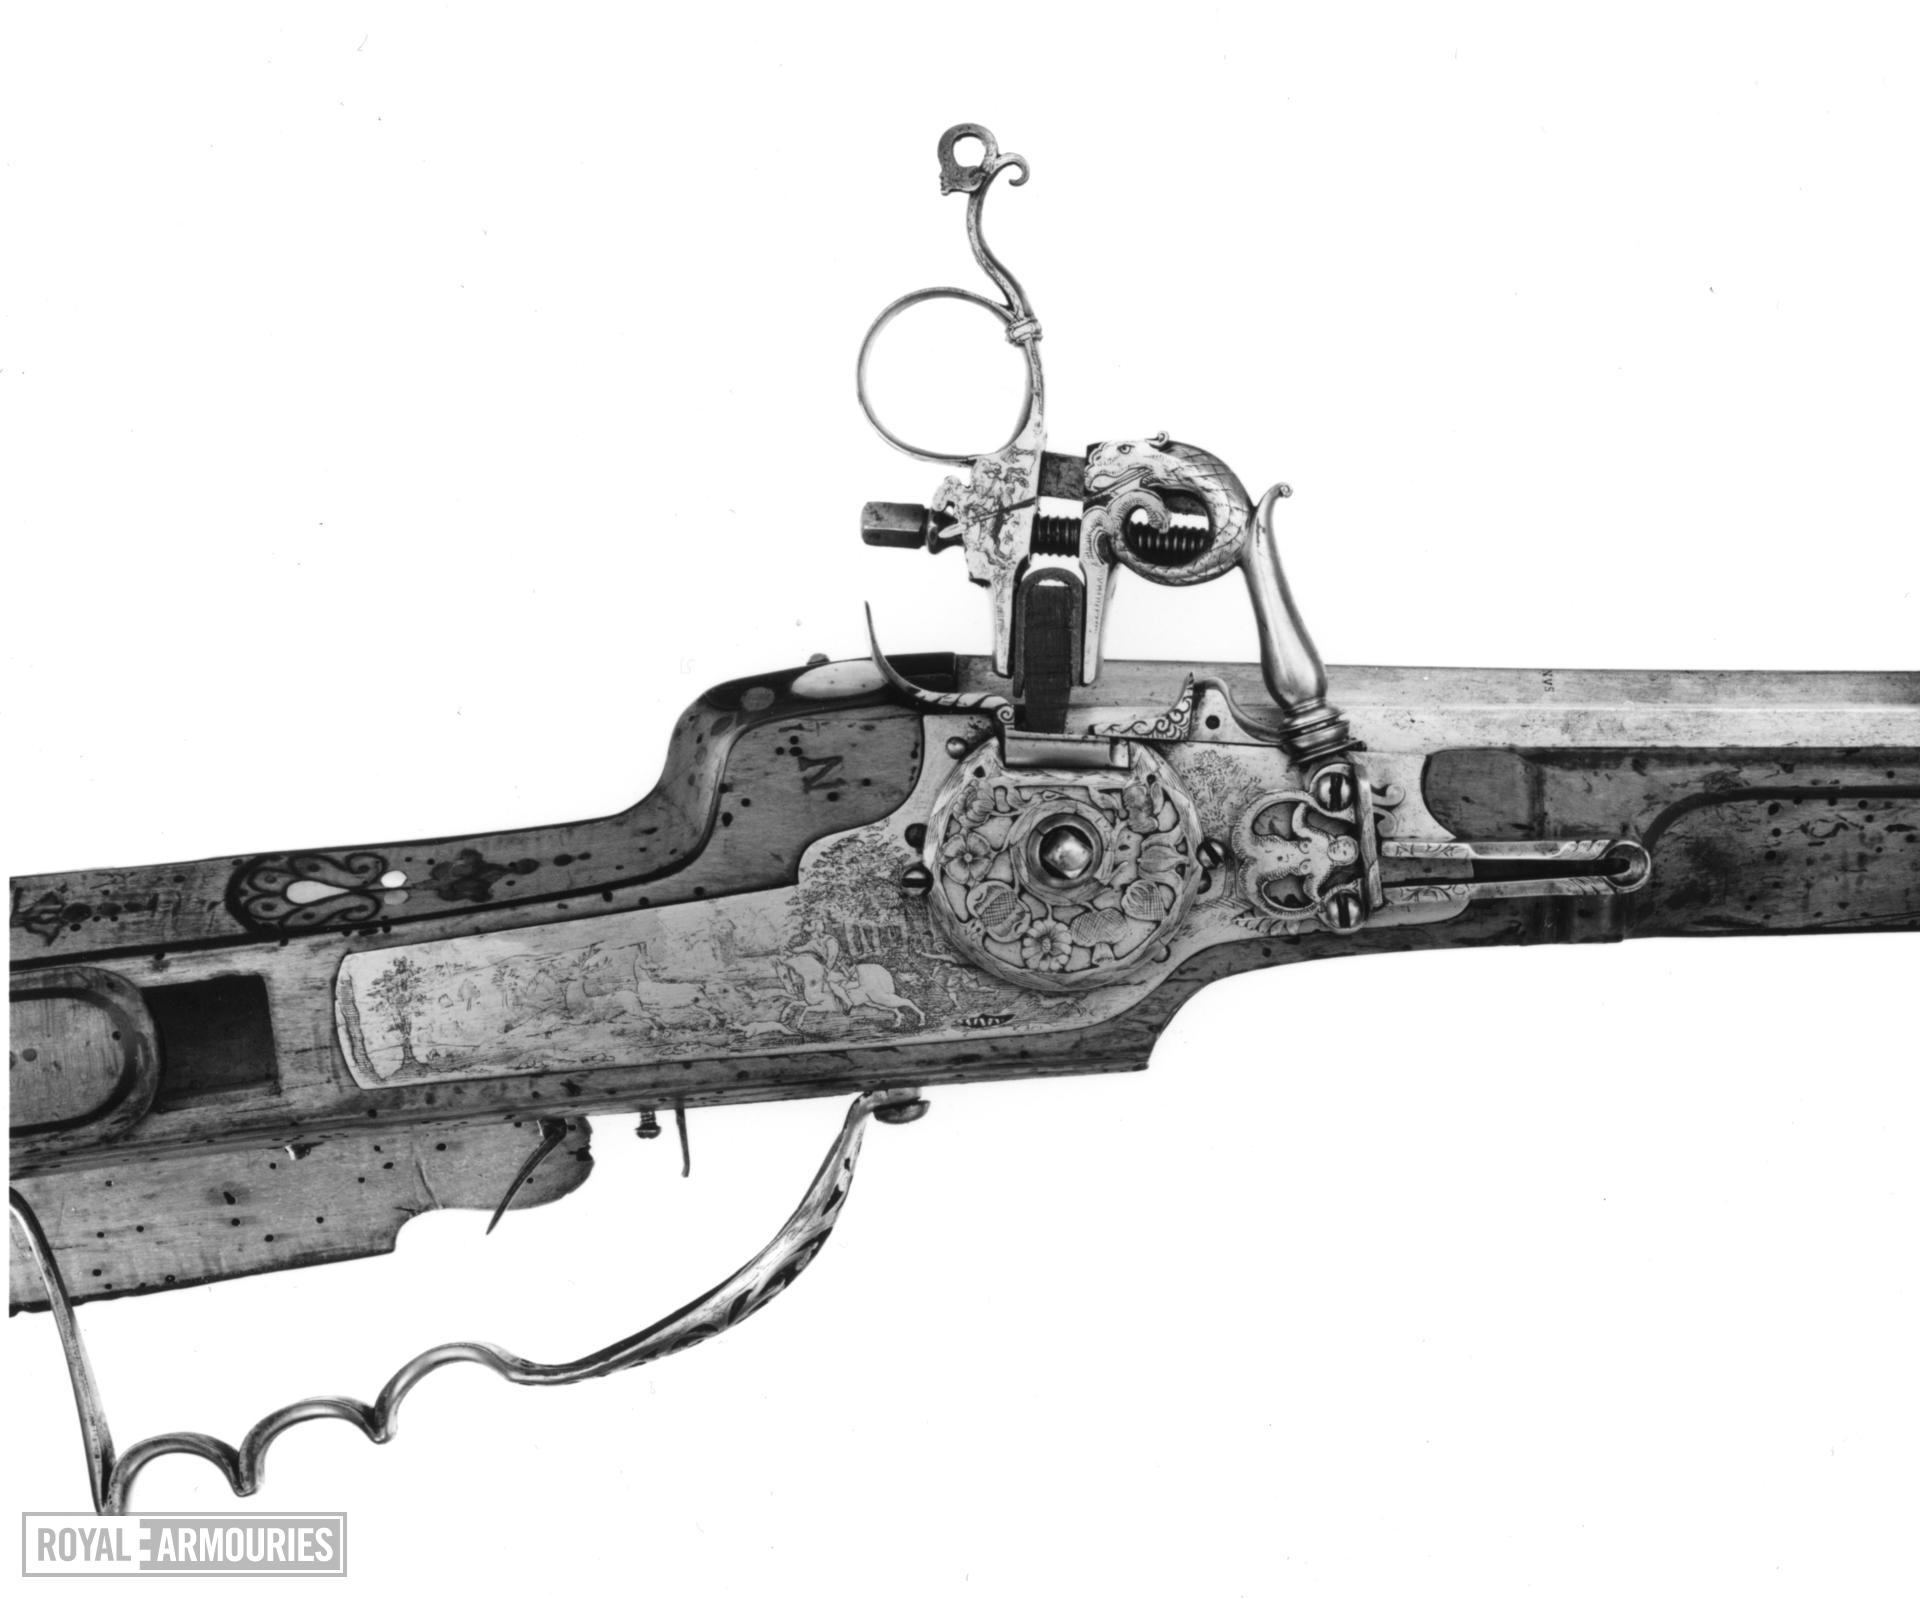 Wheellock muzzle-loading sporting rifle - By Augustinus Kotter